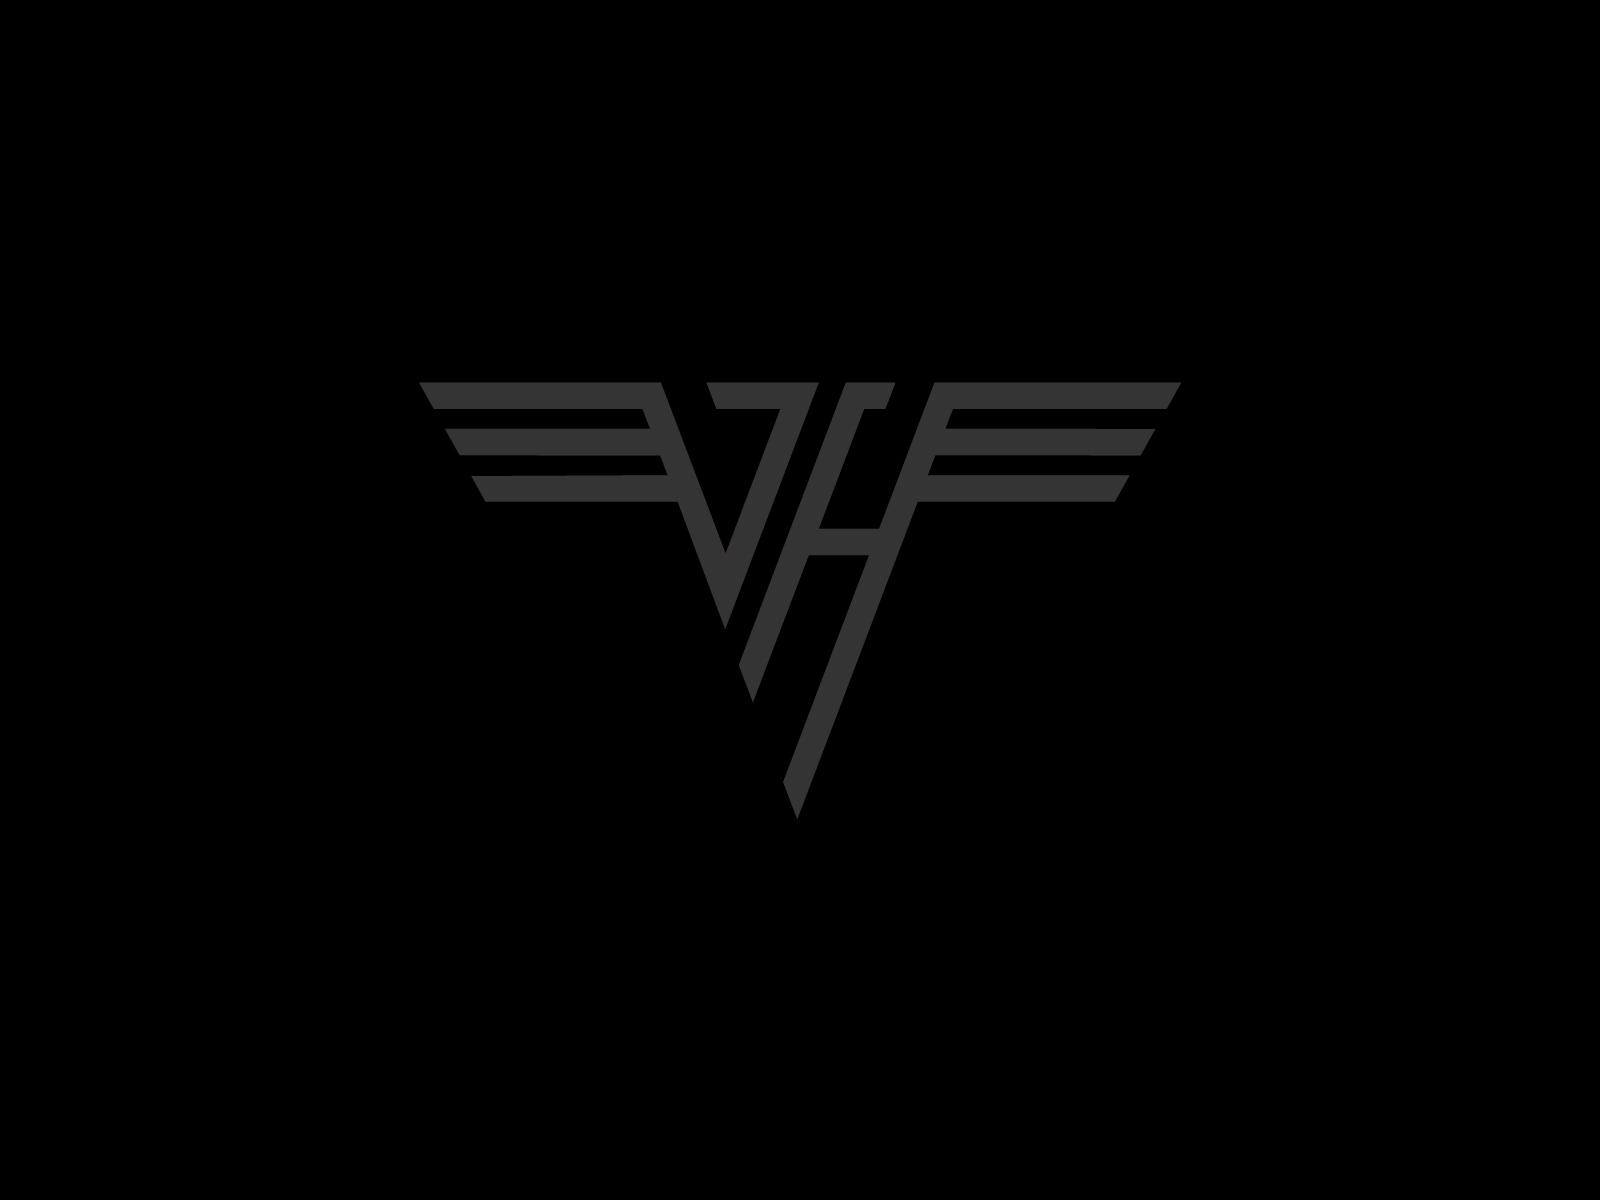 16540 free van halen logo wallpapers